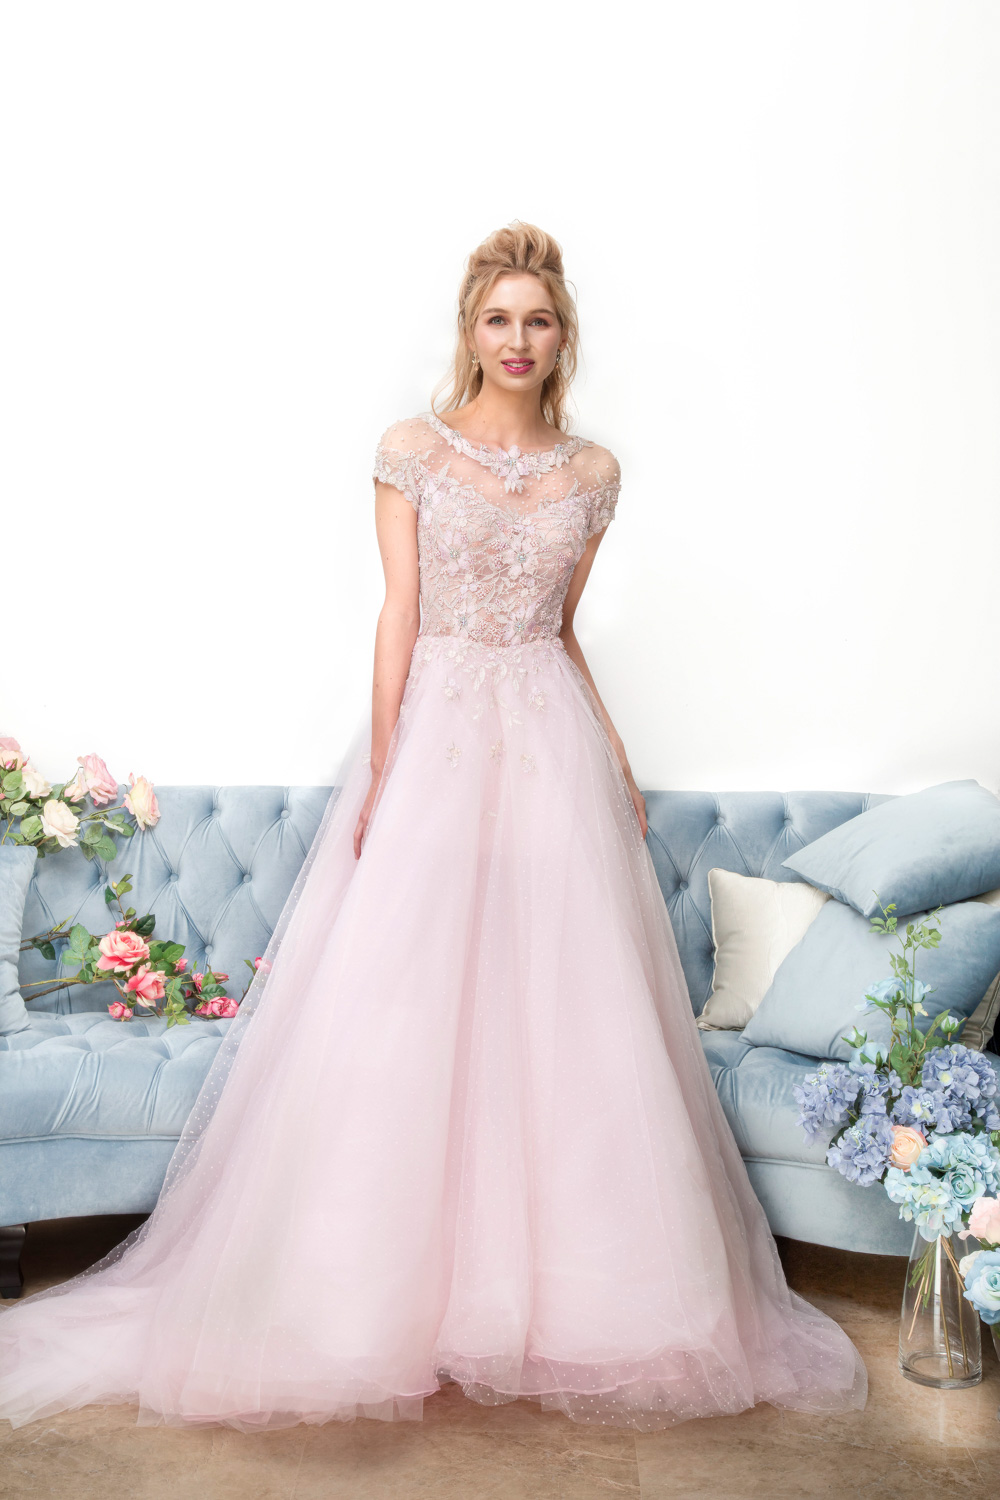 Illusion off the shoulder evening gown by CCM Wedding